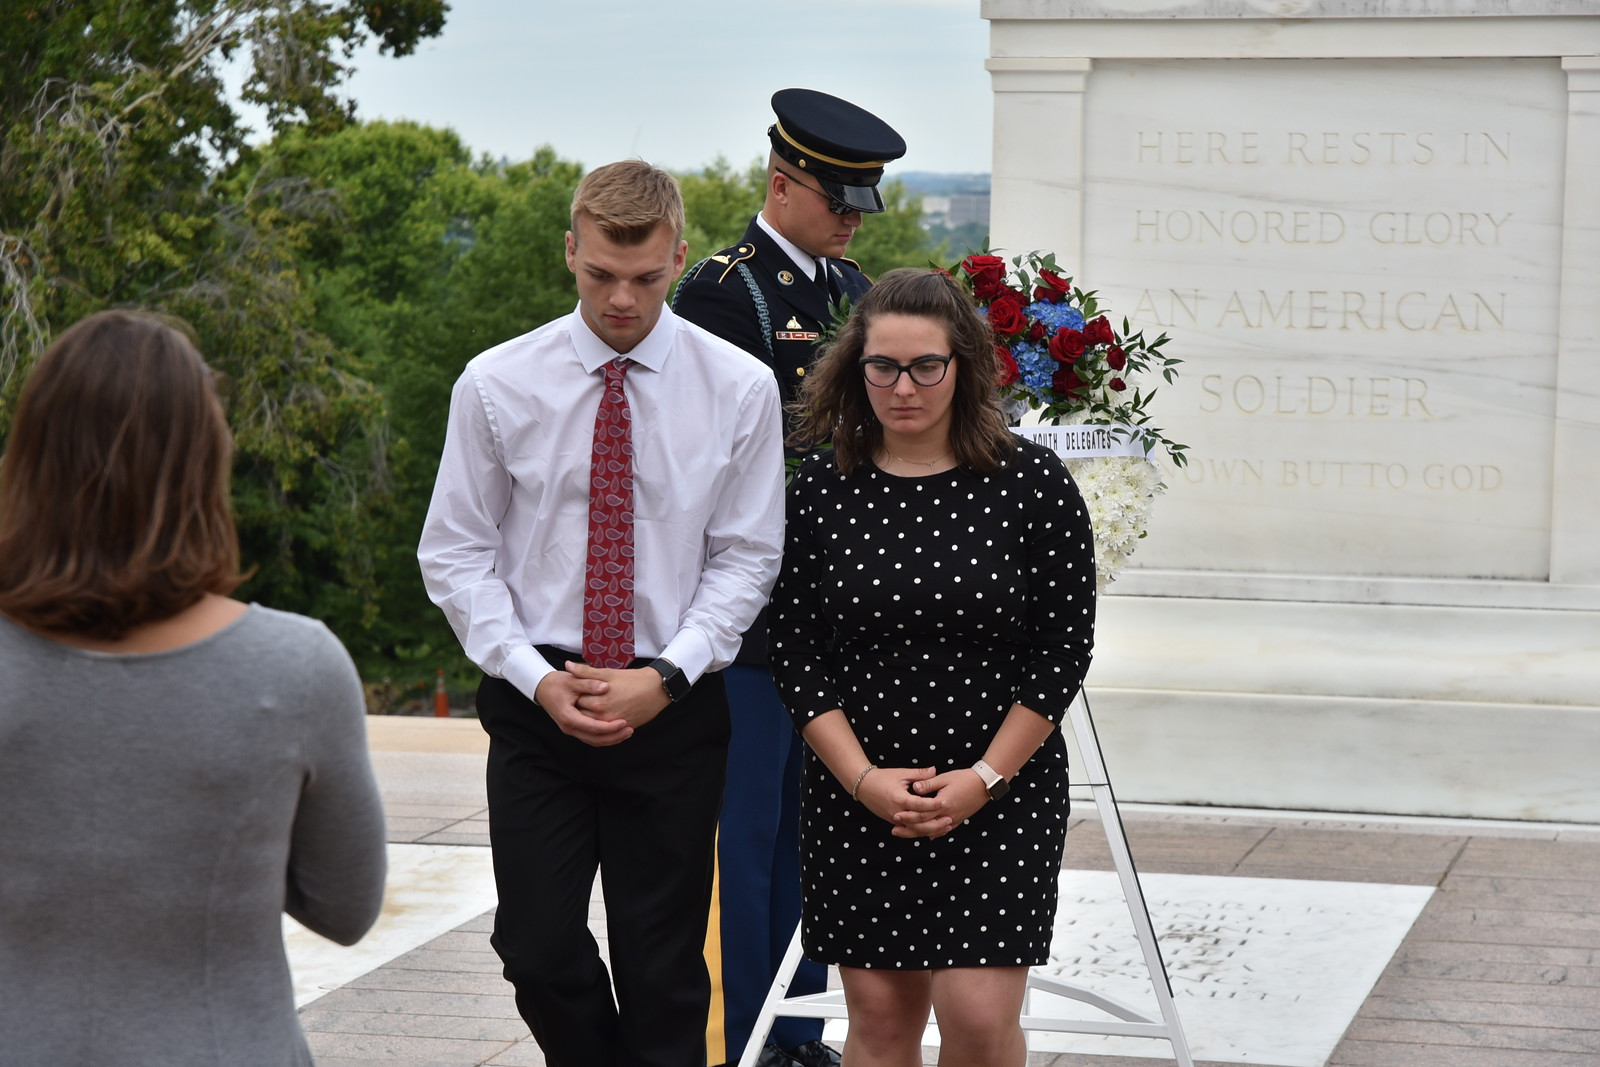 Youth tour students place a wreath at the Tomb of the Unknown